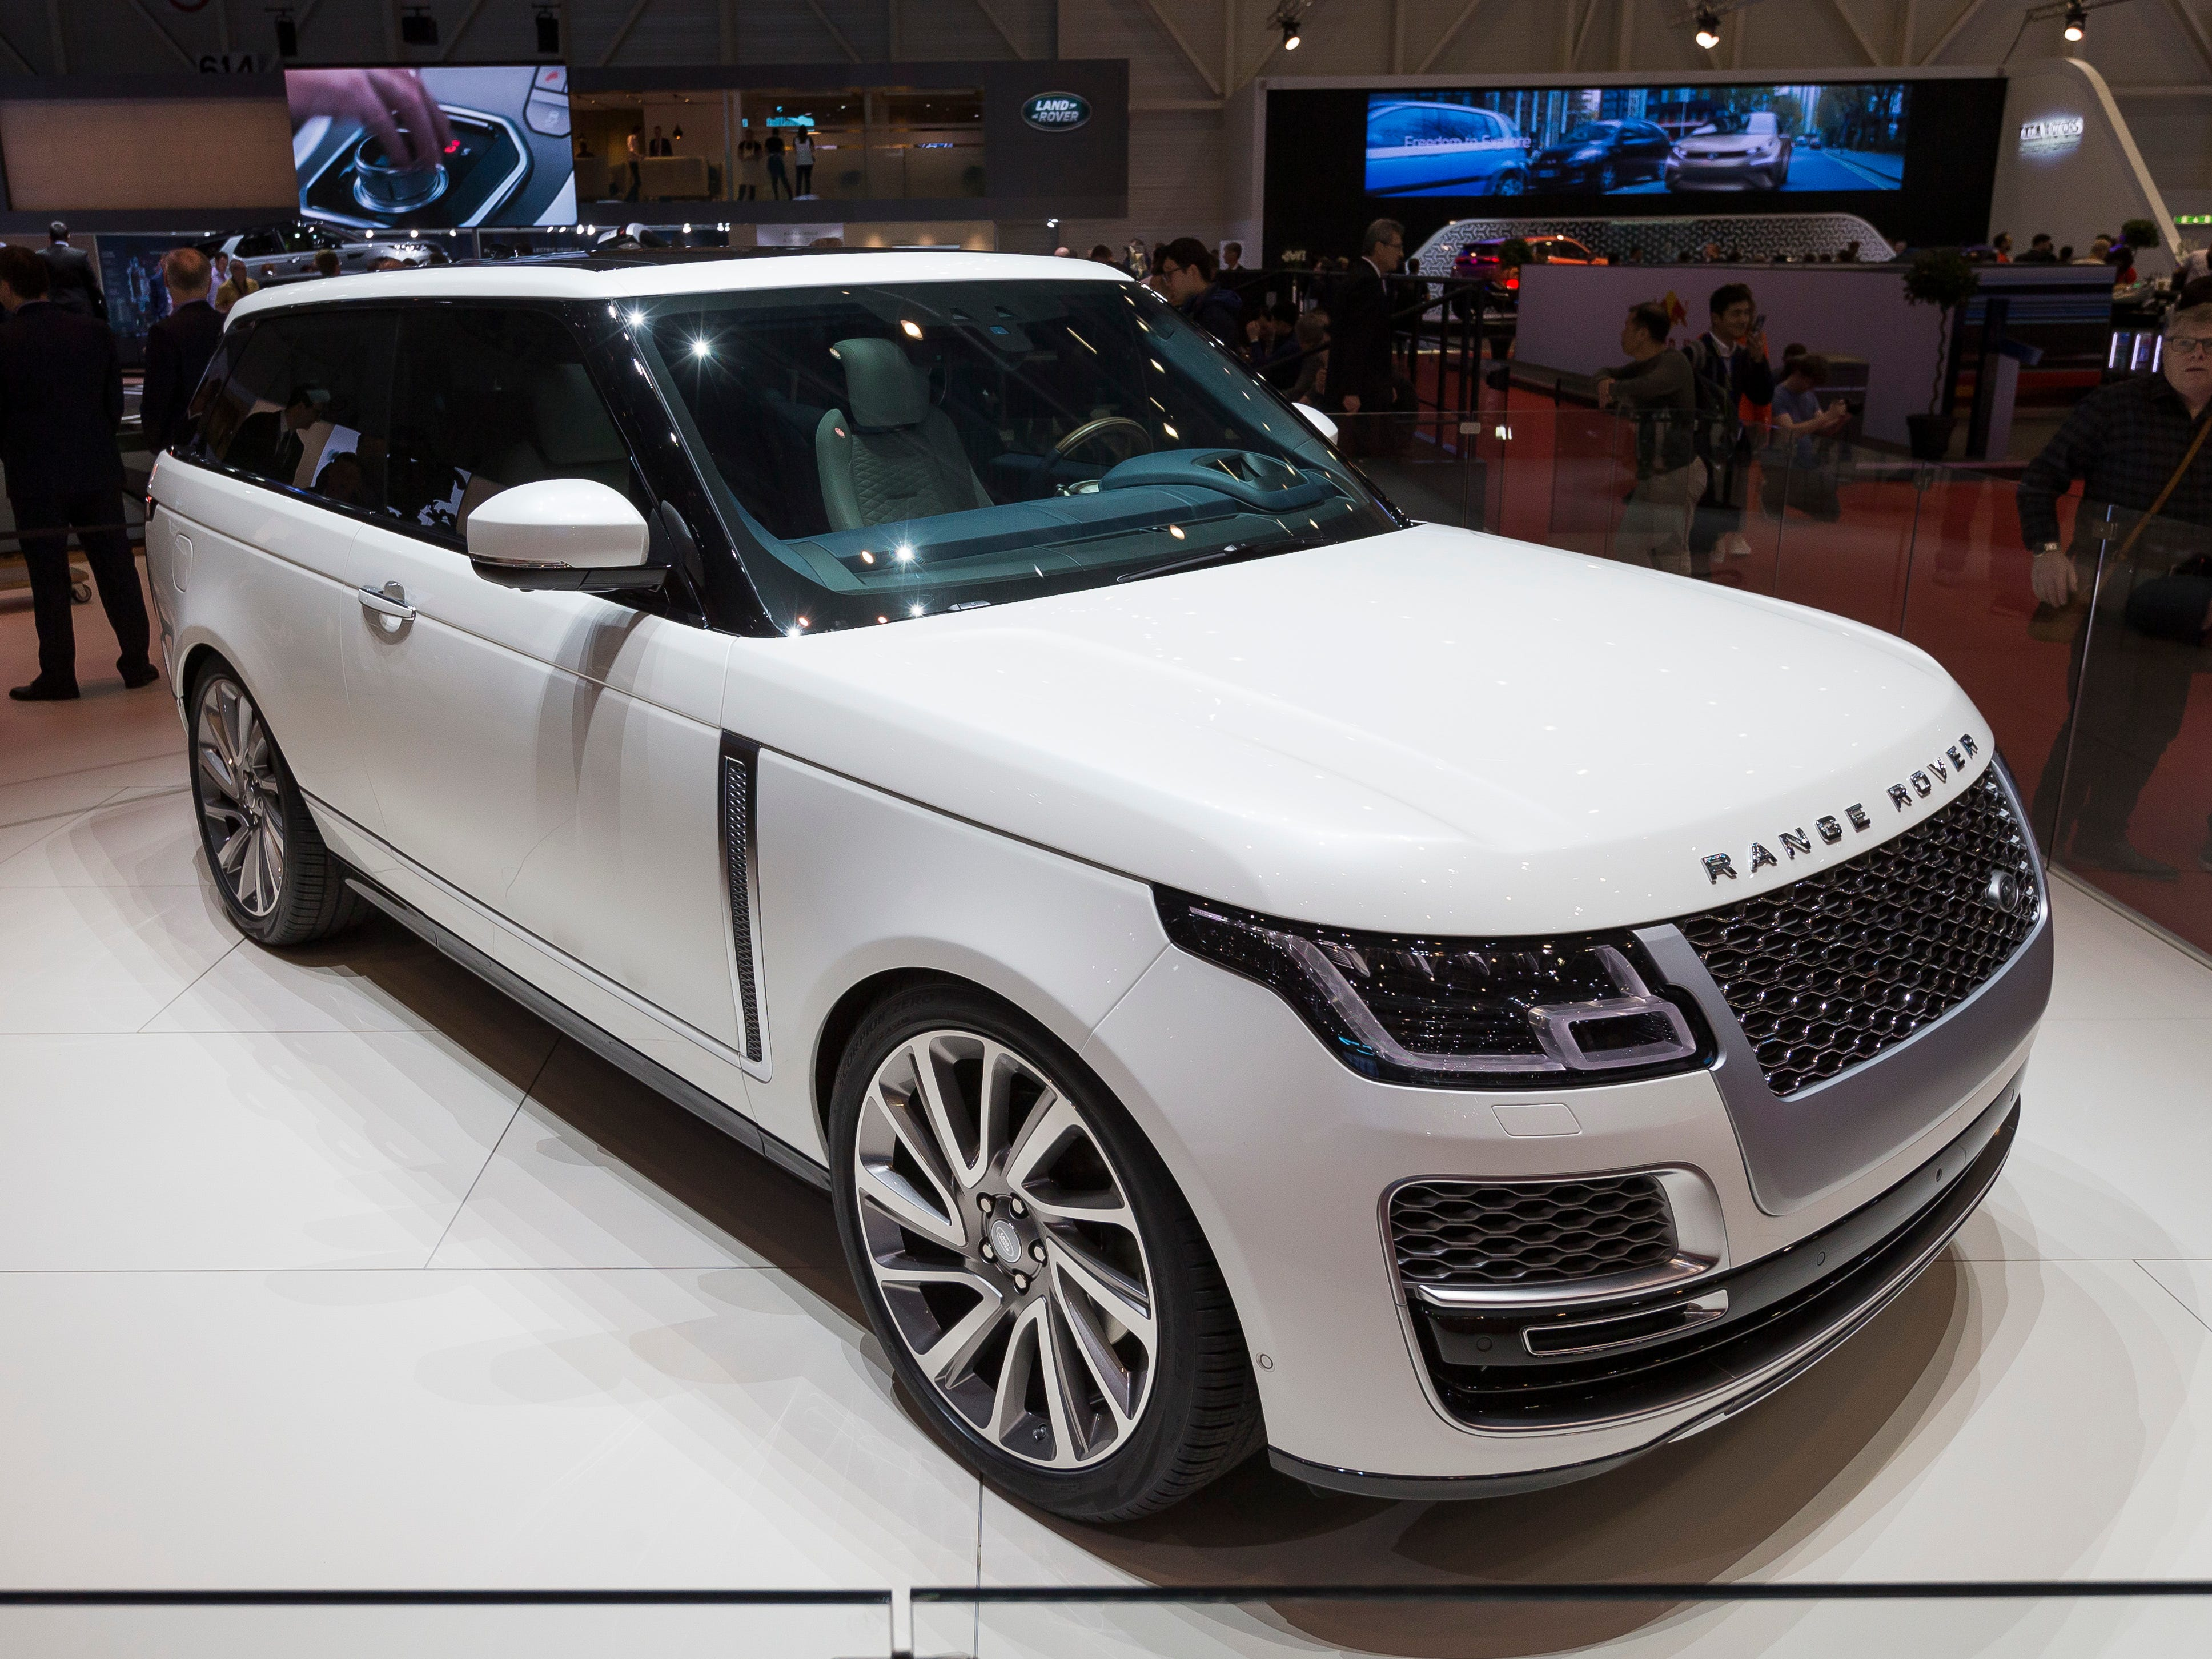 Land Rover ranked 78th at $6 billion, up 2 percent.